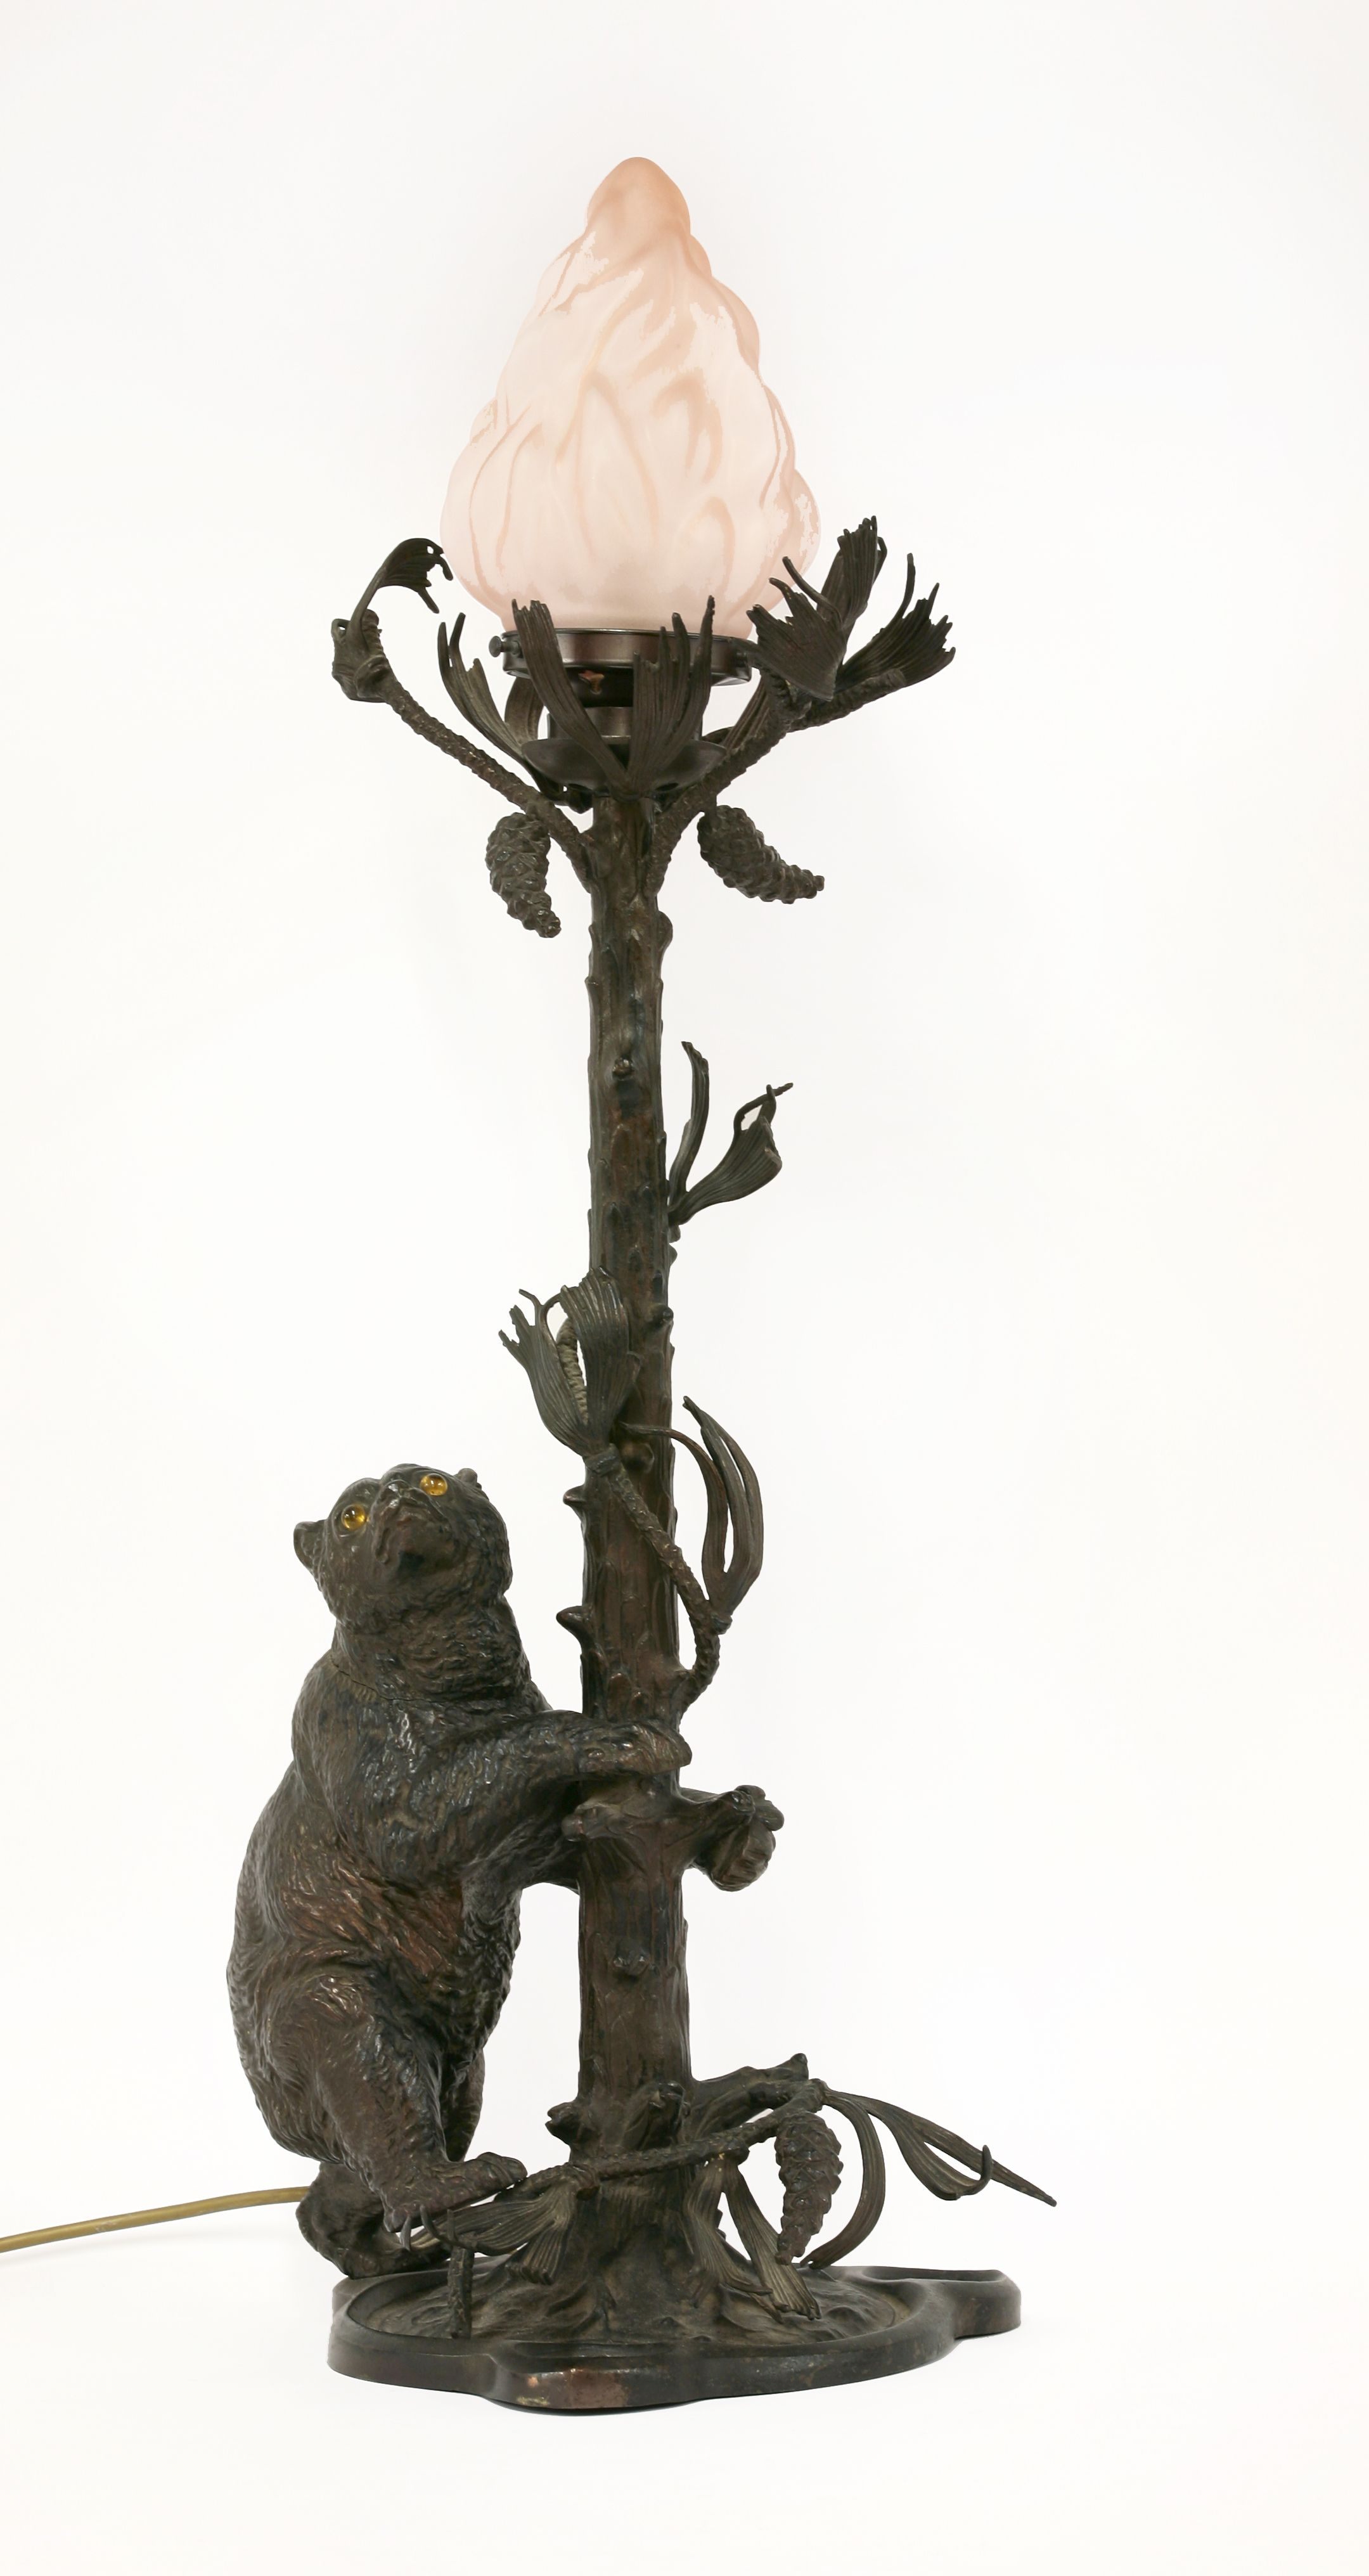 A patinated table lamp, bronze, modelled as a bear attempting to ascend a tree, the bear with glass eyes which illuminate, 76cm high, including shade Est £300-500 4th March 2014